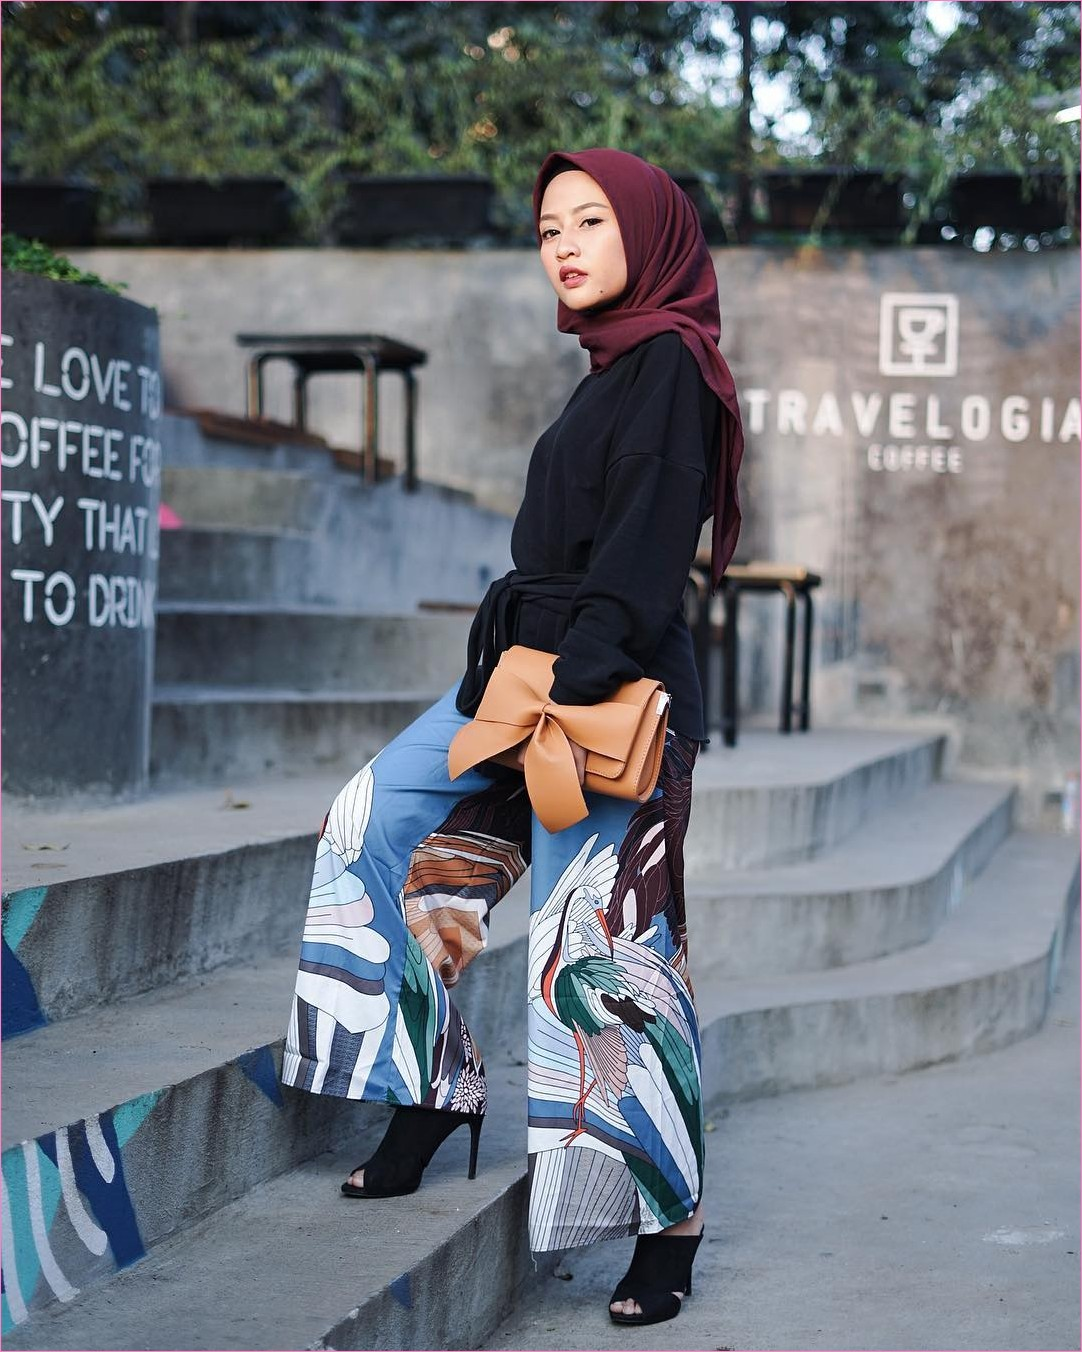 Outfit Celana Cullotes Untuk Hijabers Ala Selebgram 2018 top blouse high heels loafers and slip ons hitam cullotes bermotif biru putih kerudung segiempat hijab suare merah bata ciput ootd trendy slingbags clutch coklat muda tangga